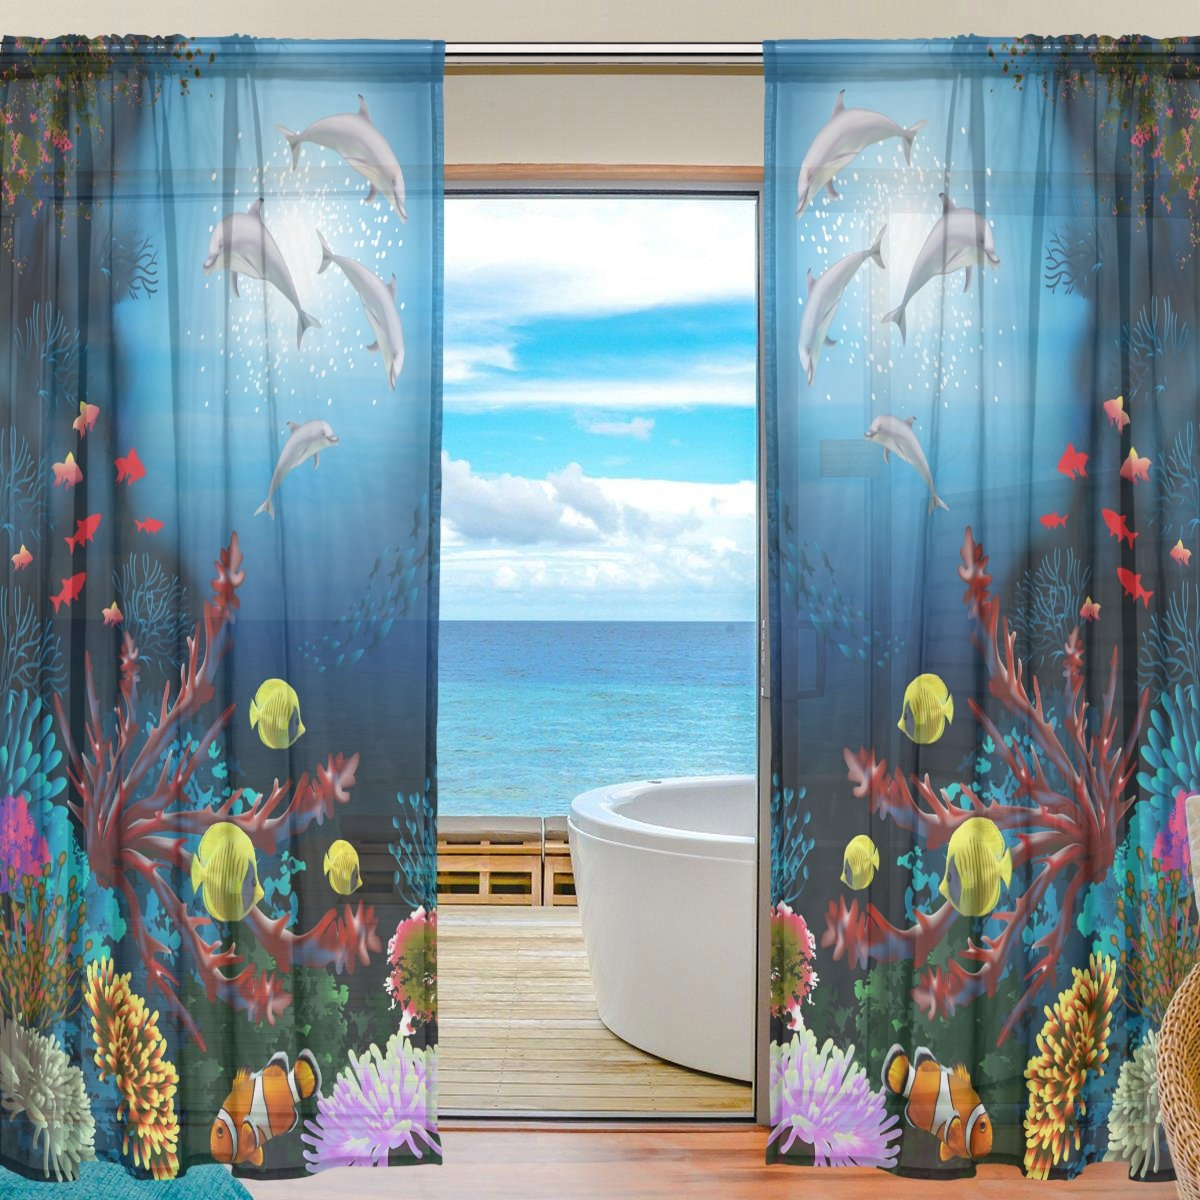 SEULIFE Window Sheer Curtain, Ocean Sea Dolphin Tropical Fish Voile Curtain Drapes for Door Kitchen Living Room Bedroom 55x78 inches 2 Panels by SEULIFE